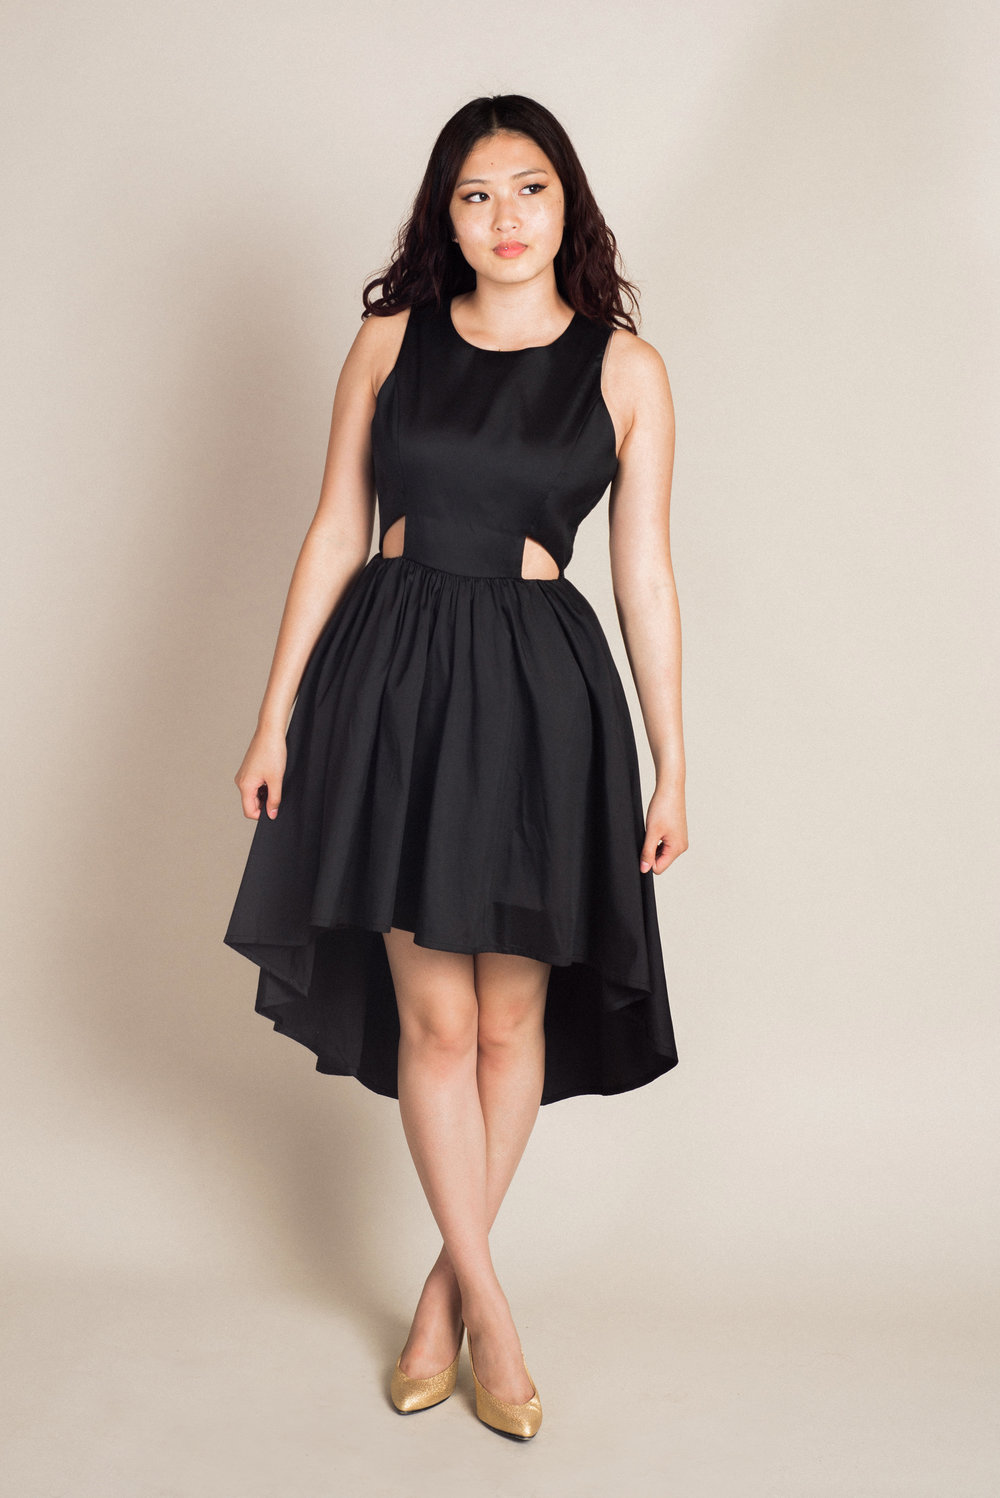 Black Hi-Lo Dress (M) | Modeled by Makenzy